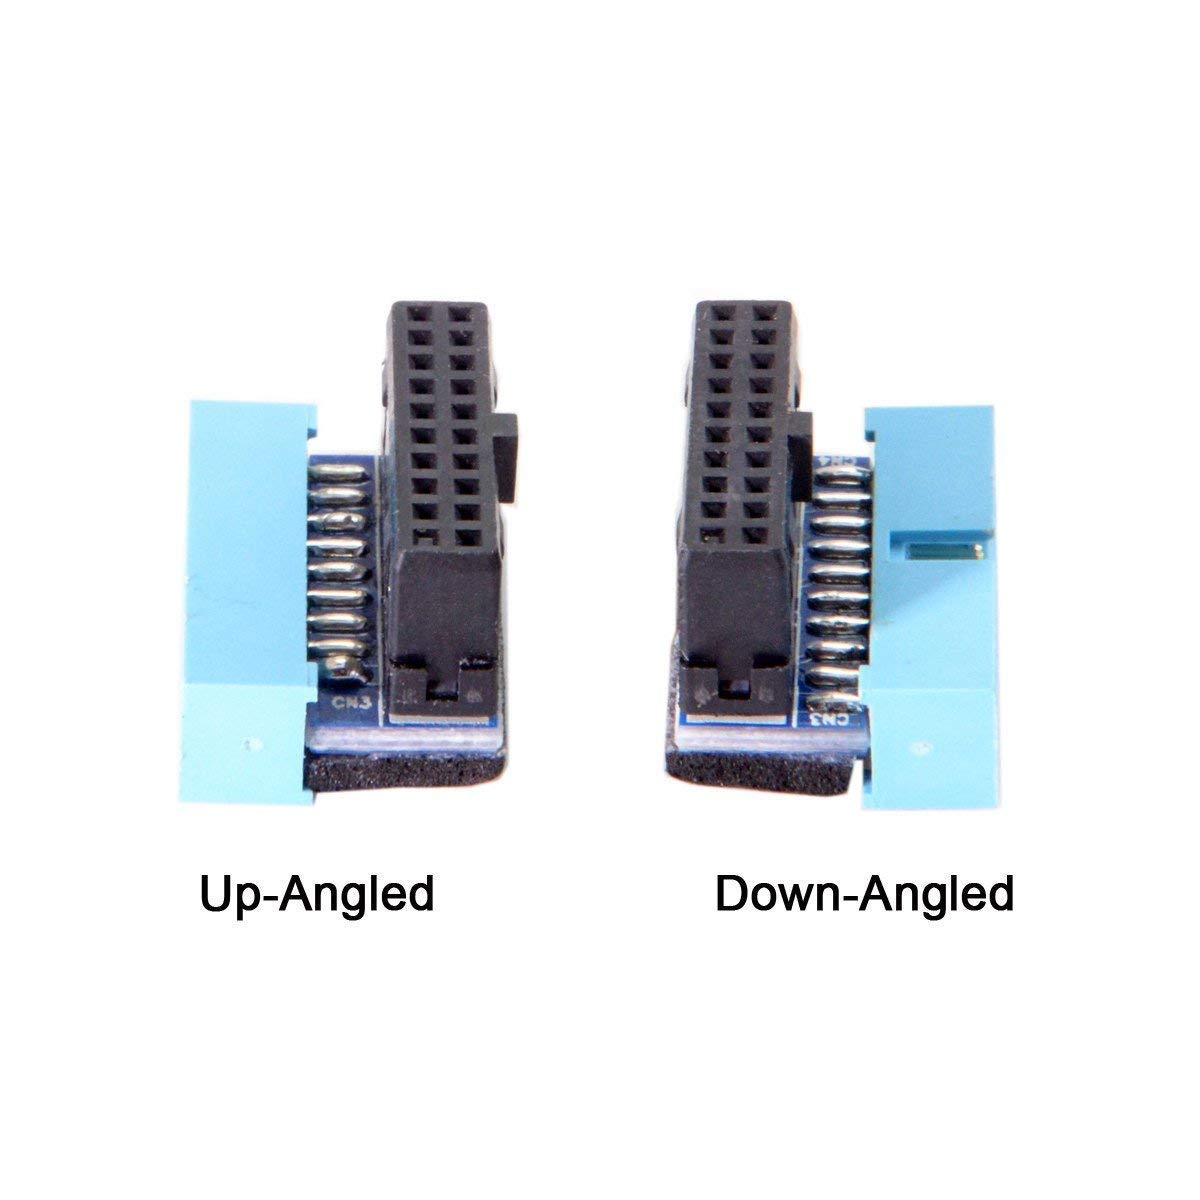 SODIAL USB 3.0 20pin Male to Female Extension Adapter Angled 90 Degree for Motherboard Mainboard (Up angled)